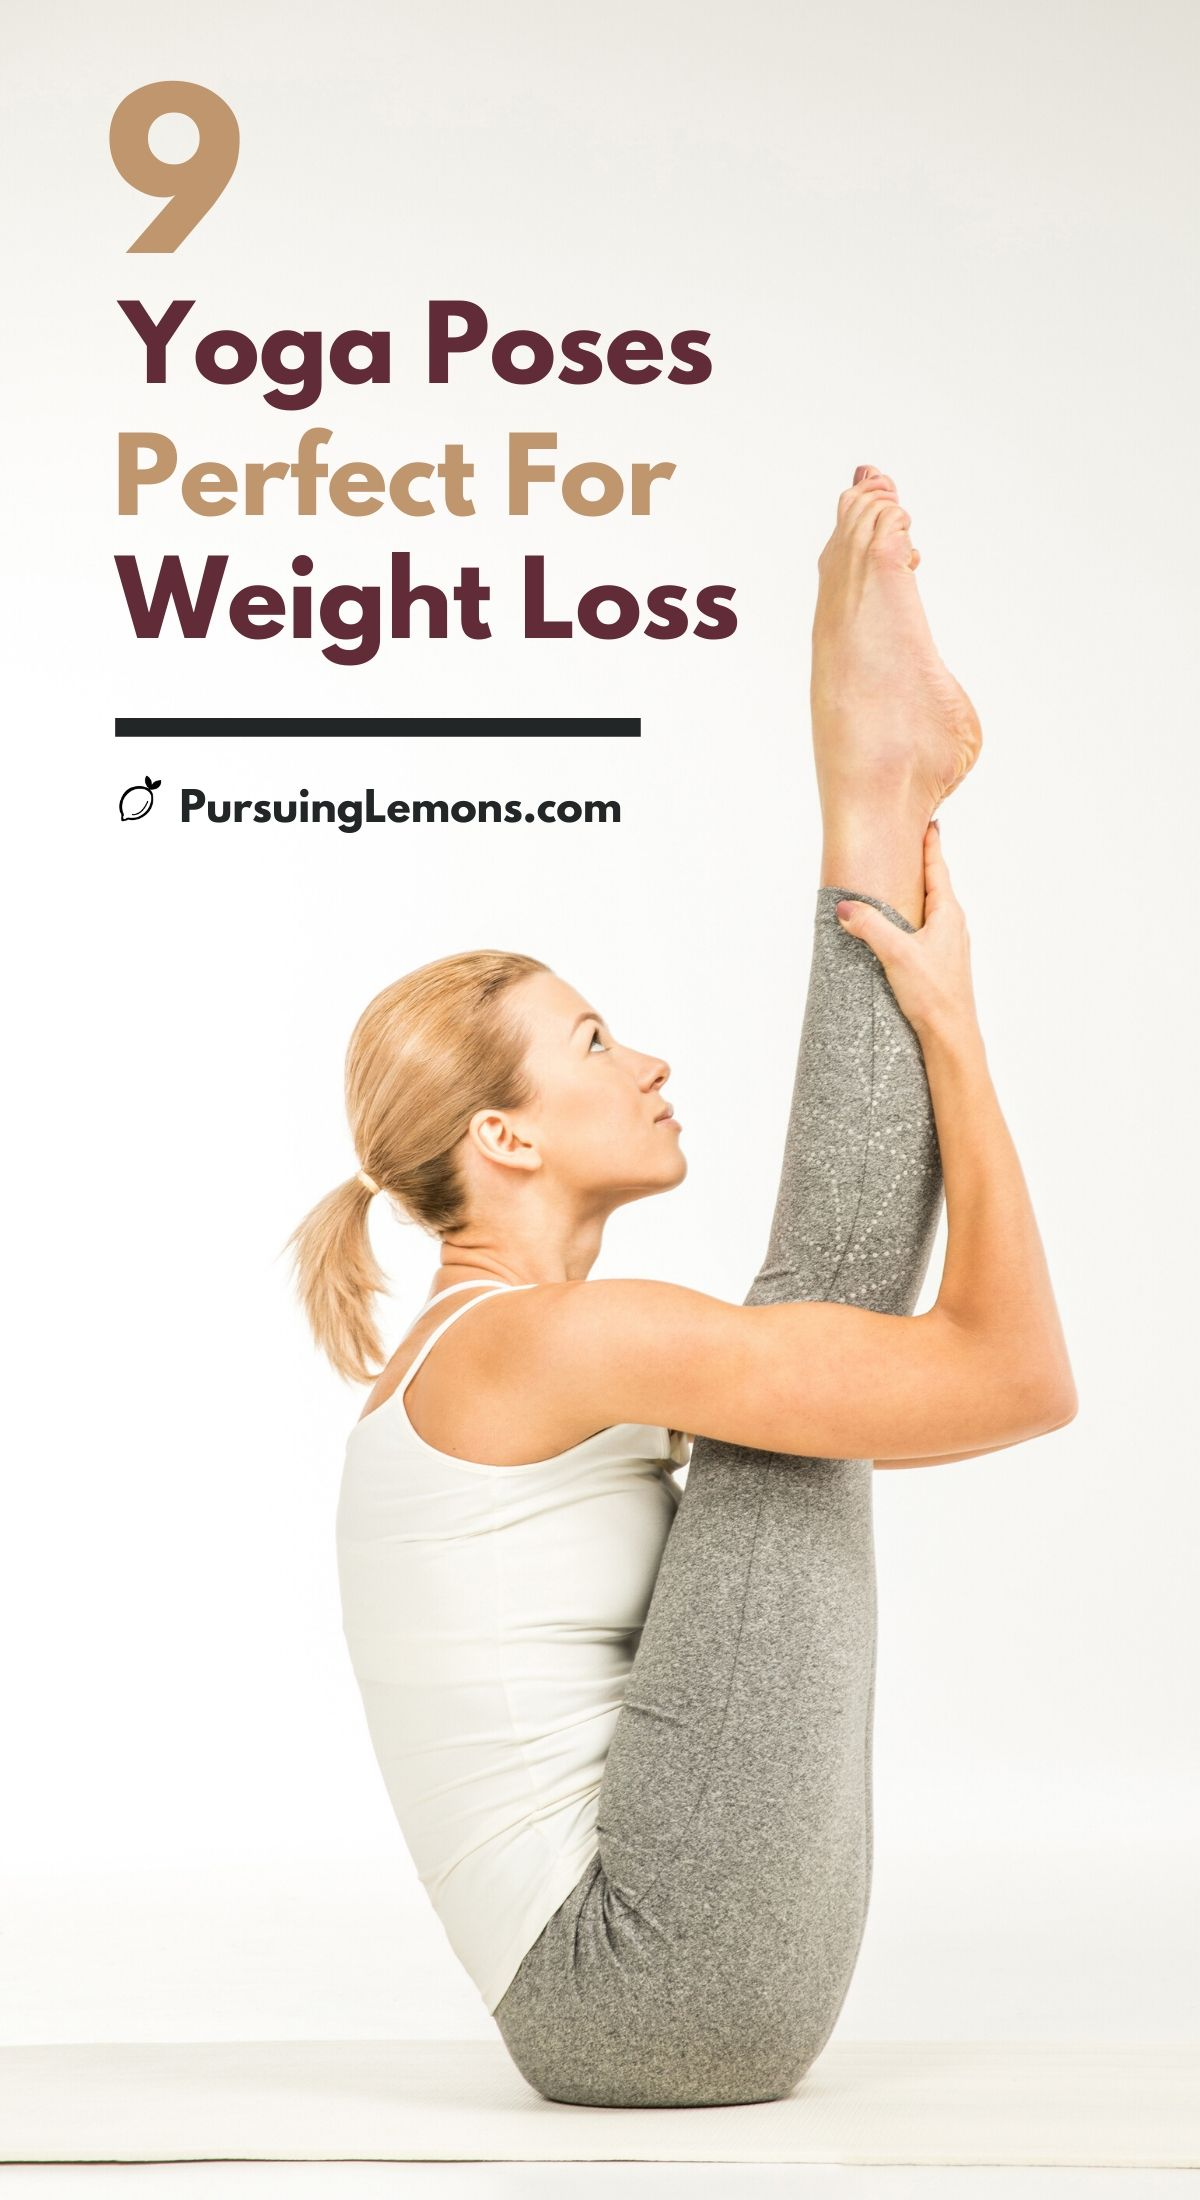 9 Best Yoga Poses for Weight Loss | Shred those extra pounds and live a healthy lifestyle today! Start practicing these yoga poses for weight loss designed to burn fats and strengthen muscles. #yoga #weightloss #weightlossyoga